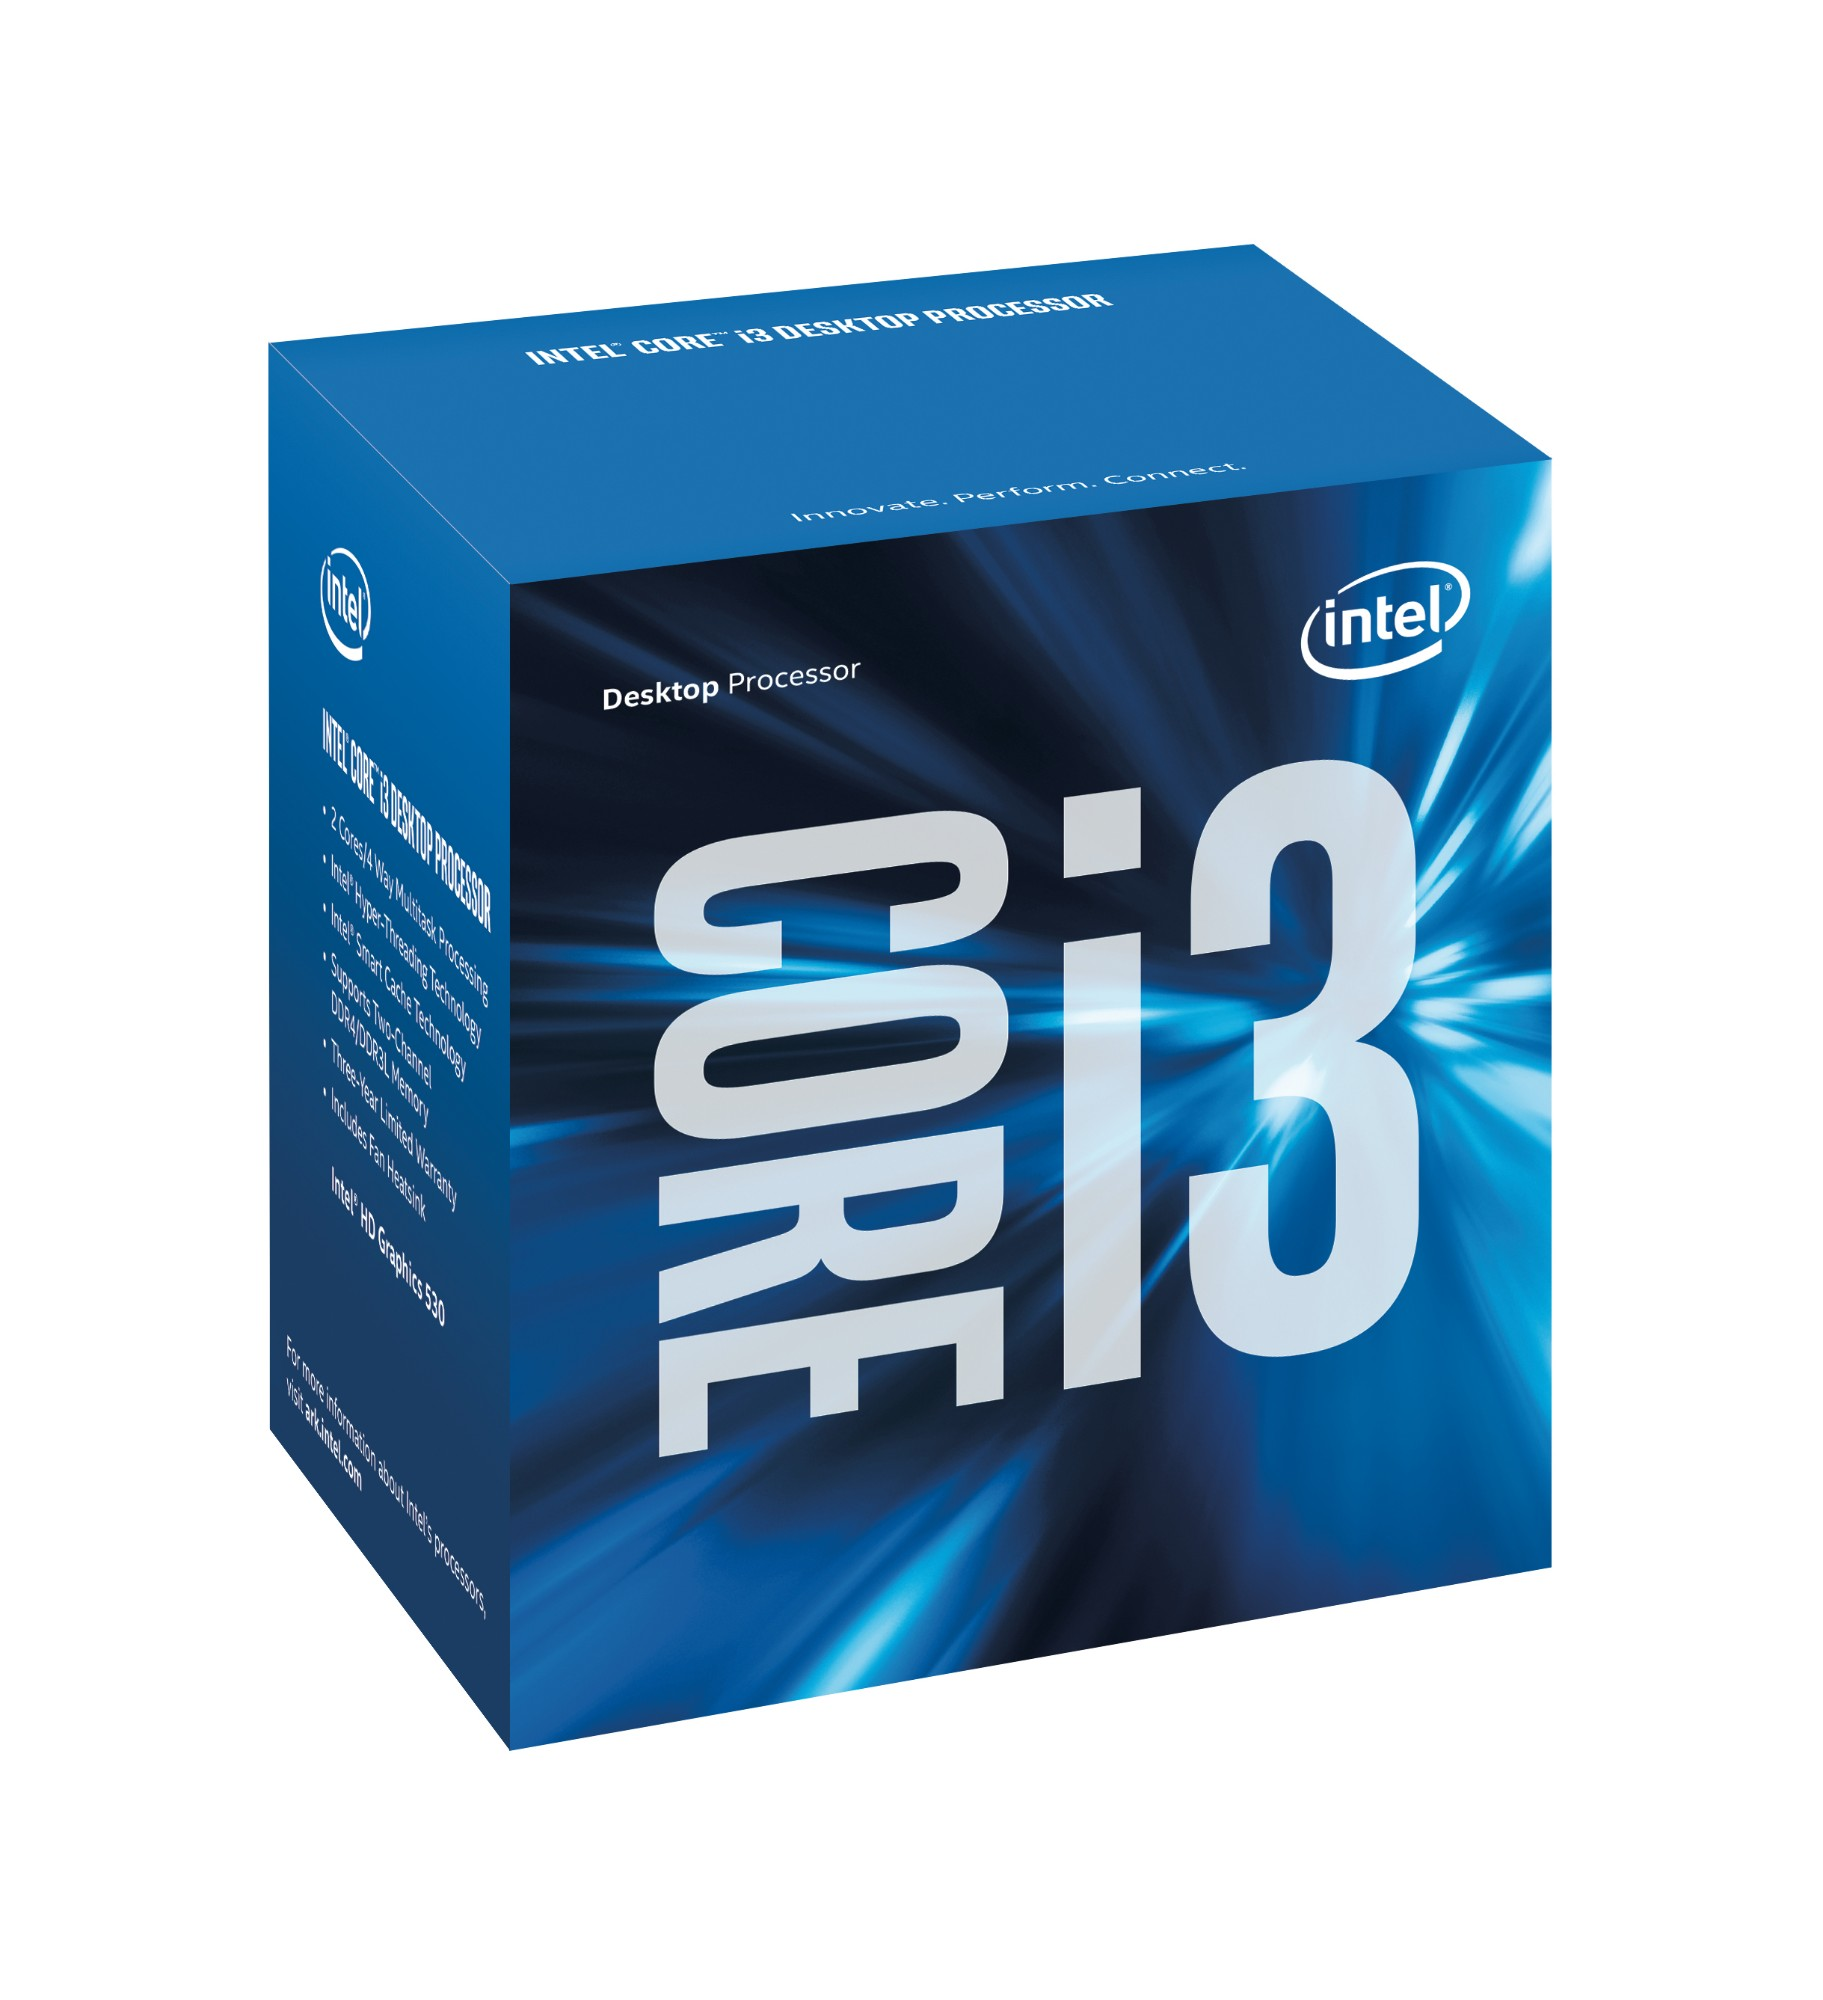 Intel Core ® ™ i3-6100T Processor (3M Cache, 3.20 GHz) 3.2GHz 3MB Smart Cache Box processor